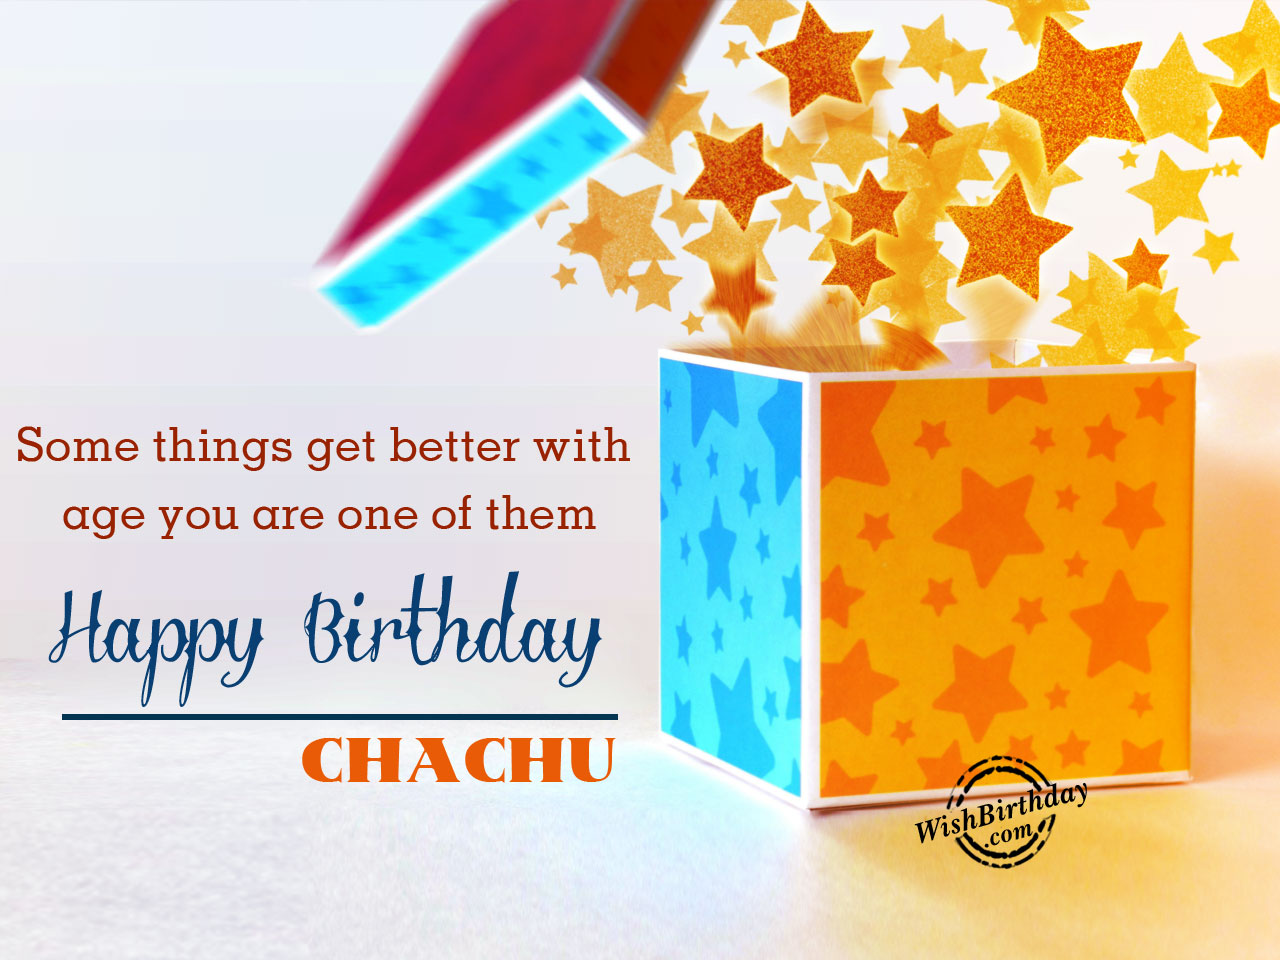 birthday card for chachu ; Some-things-get-better